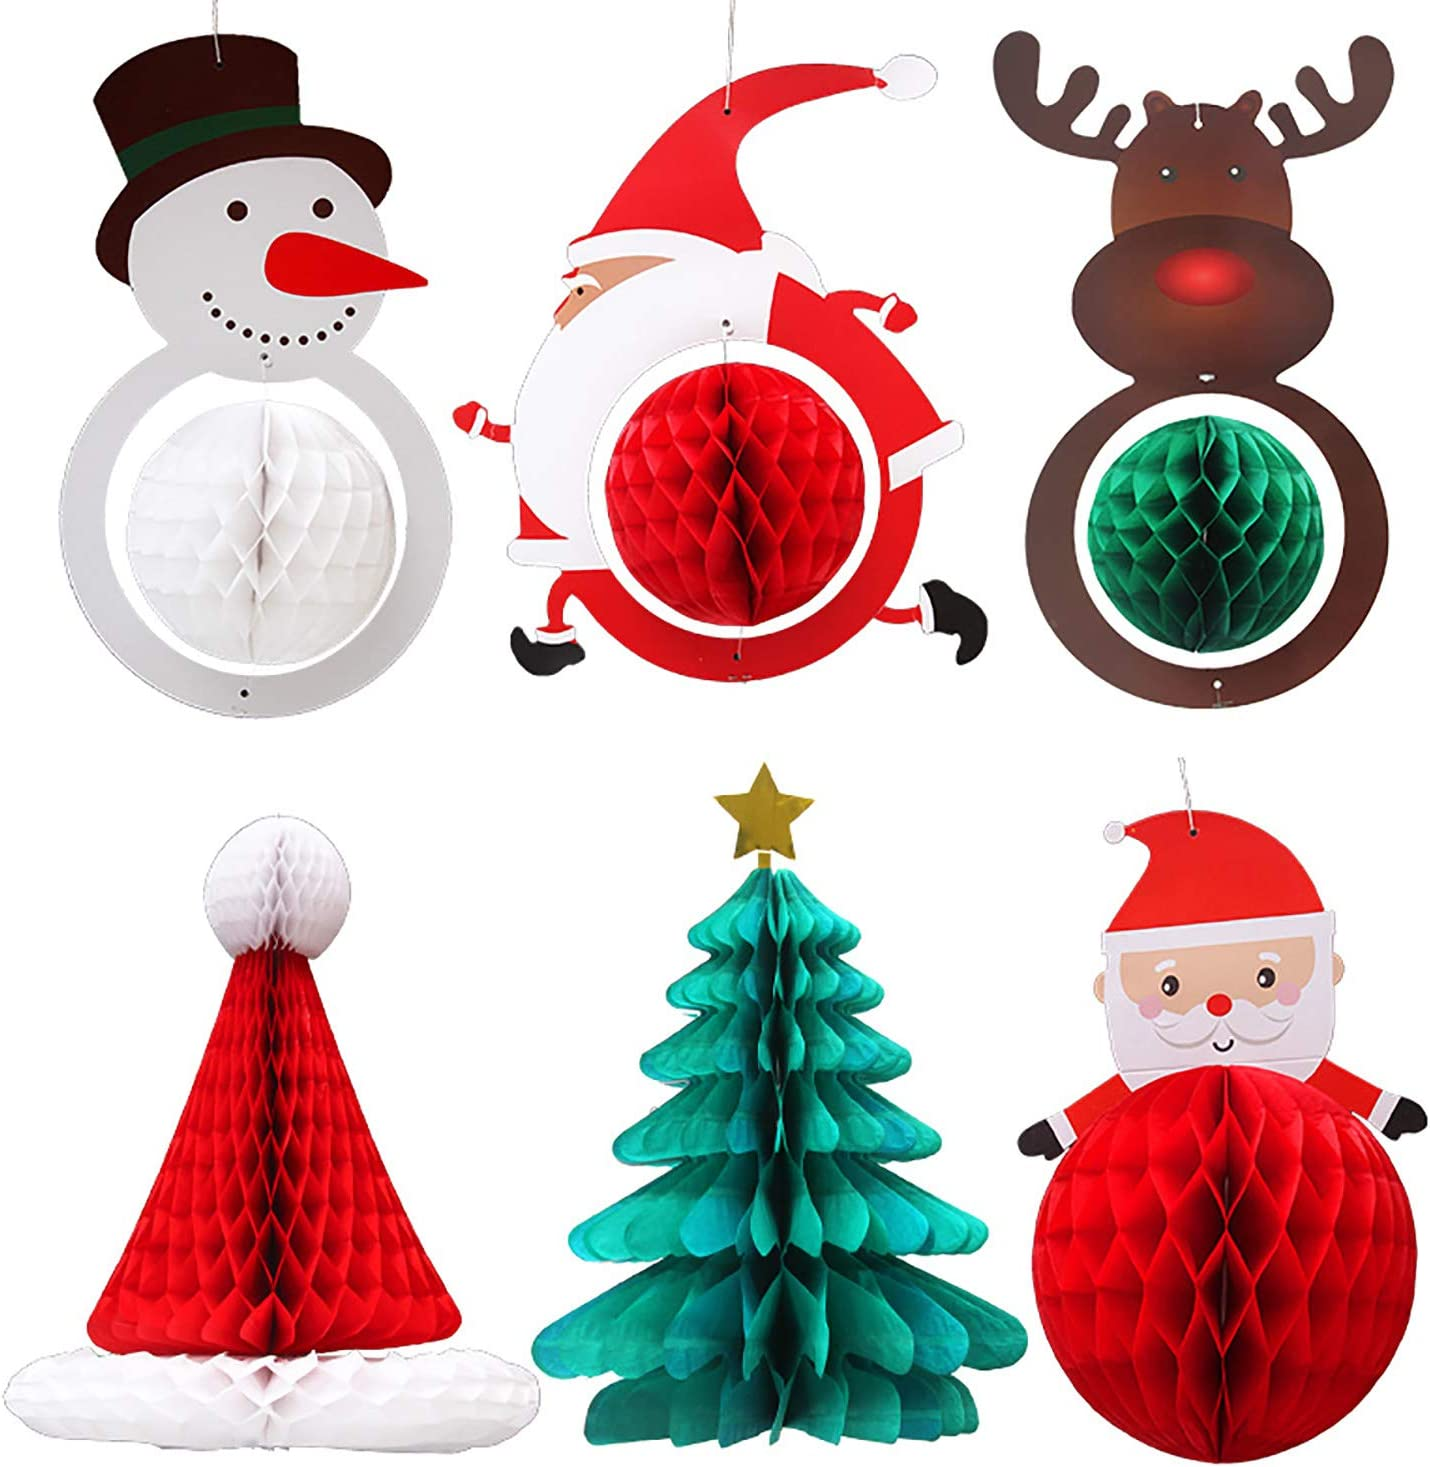 Christmas Decorations 6PCS 3D Christmas Honeycomb Paper Lantern Set for New Year's Eve Xmas Winter Wonderland Party Ornament Window Decor Tree Décor